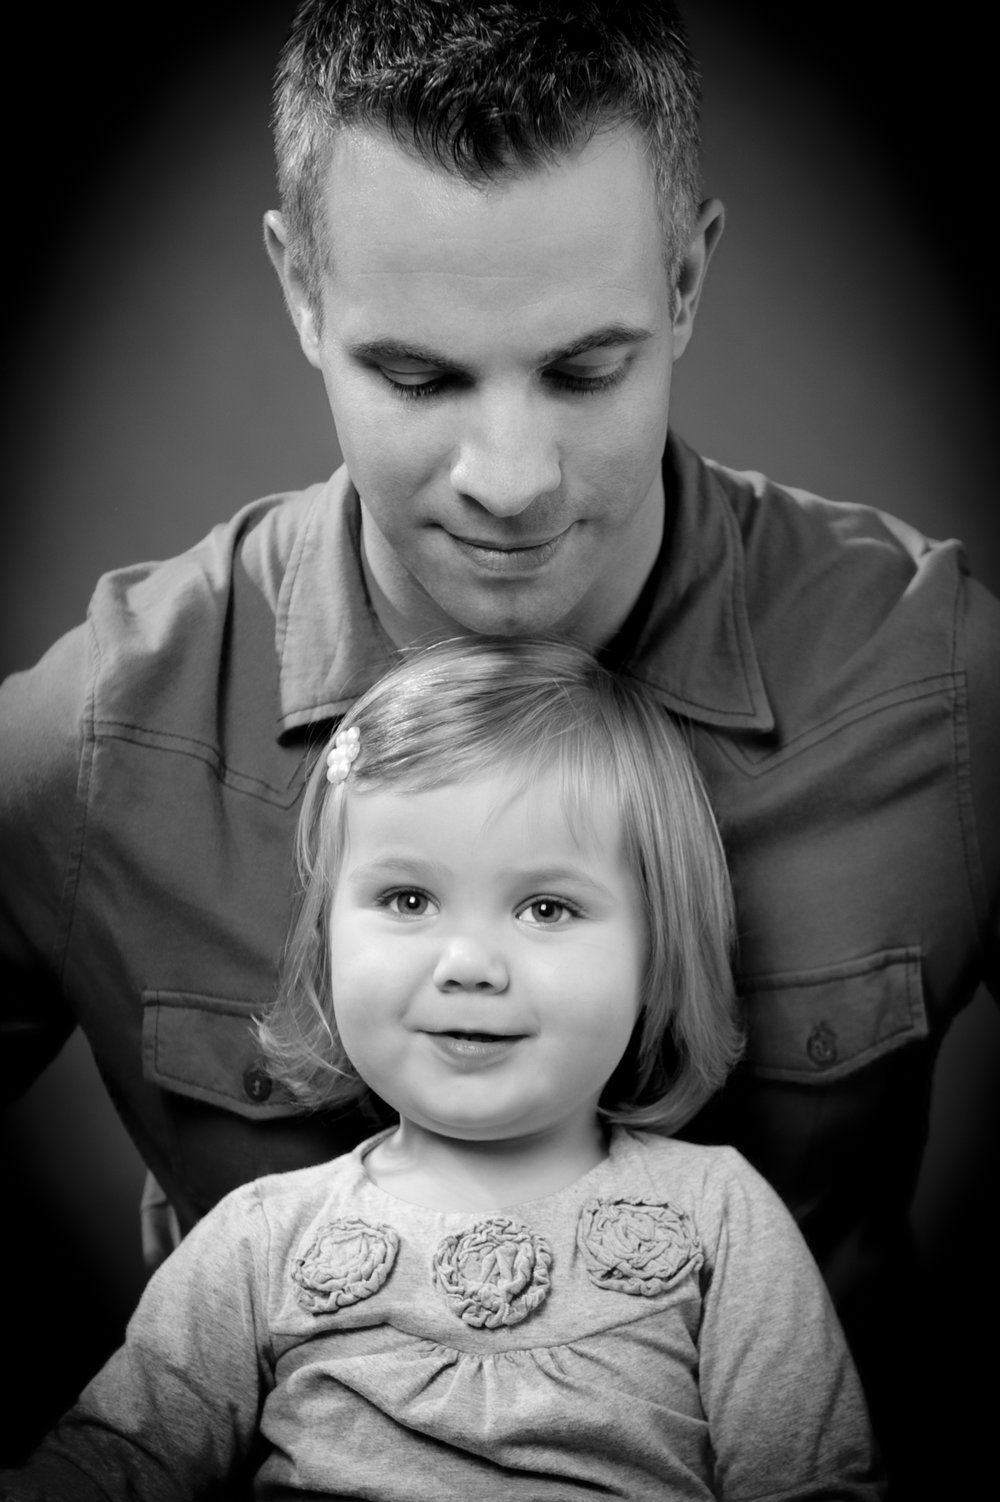 Marta-Hewson-Classical-portrait-father-and-daughter-smile.jpg